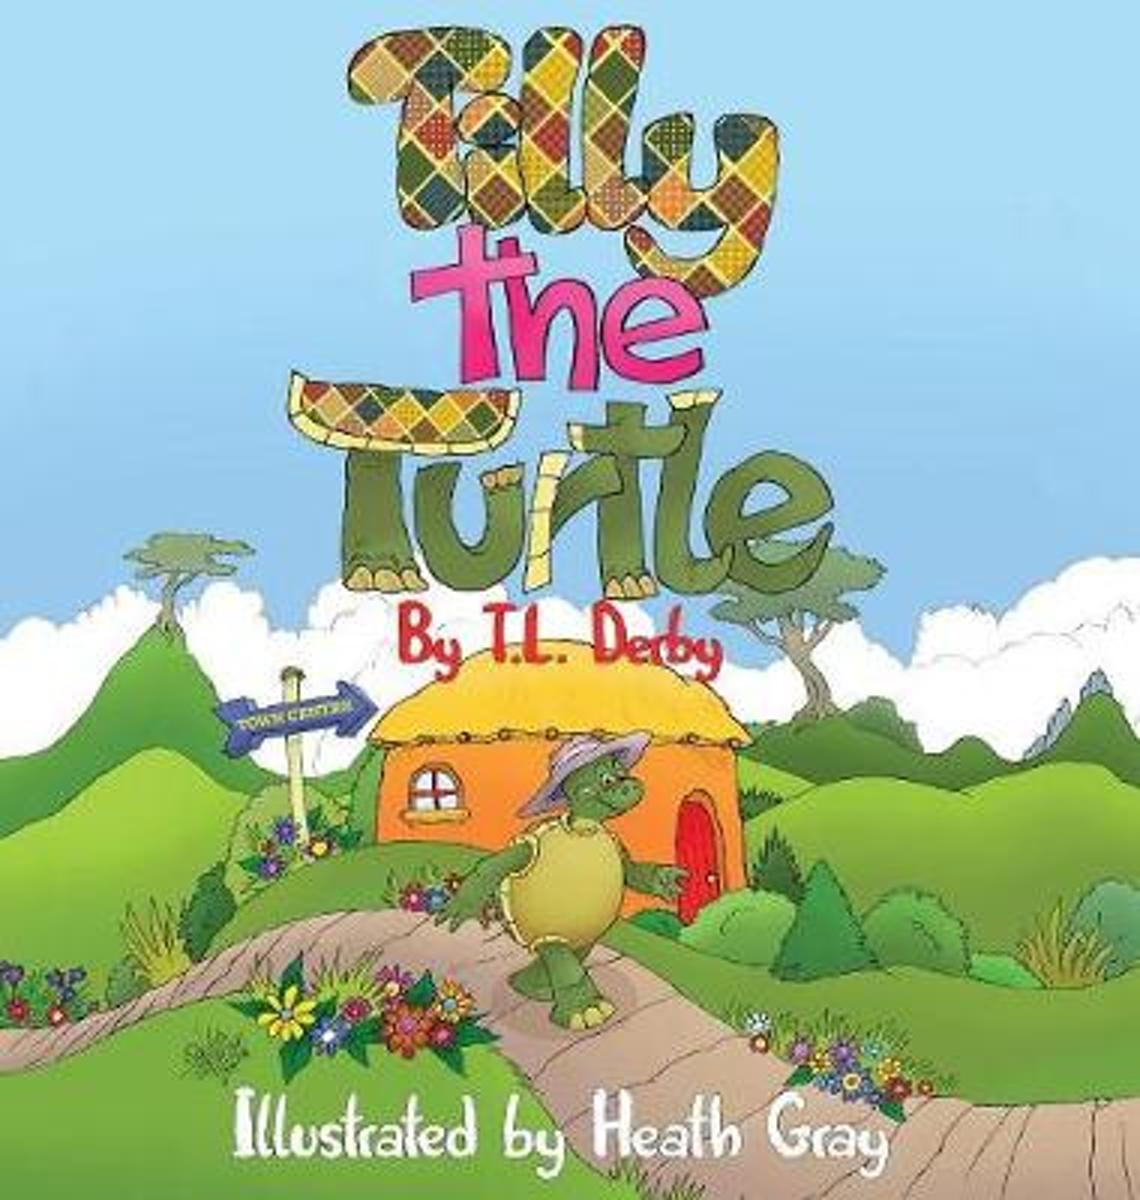 Tilly the Turtle